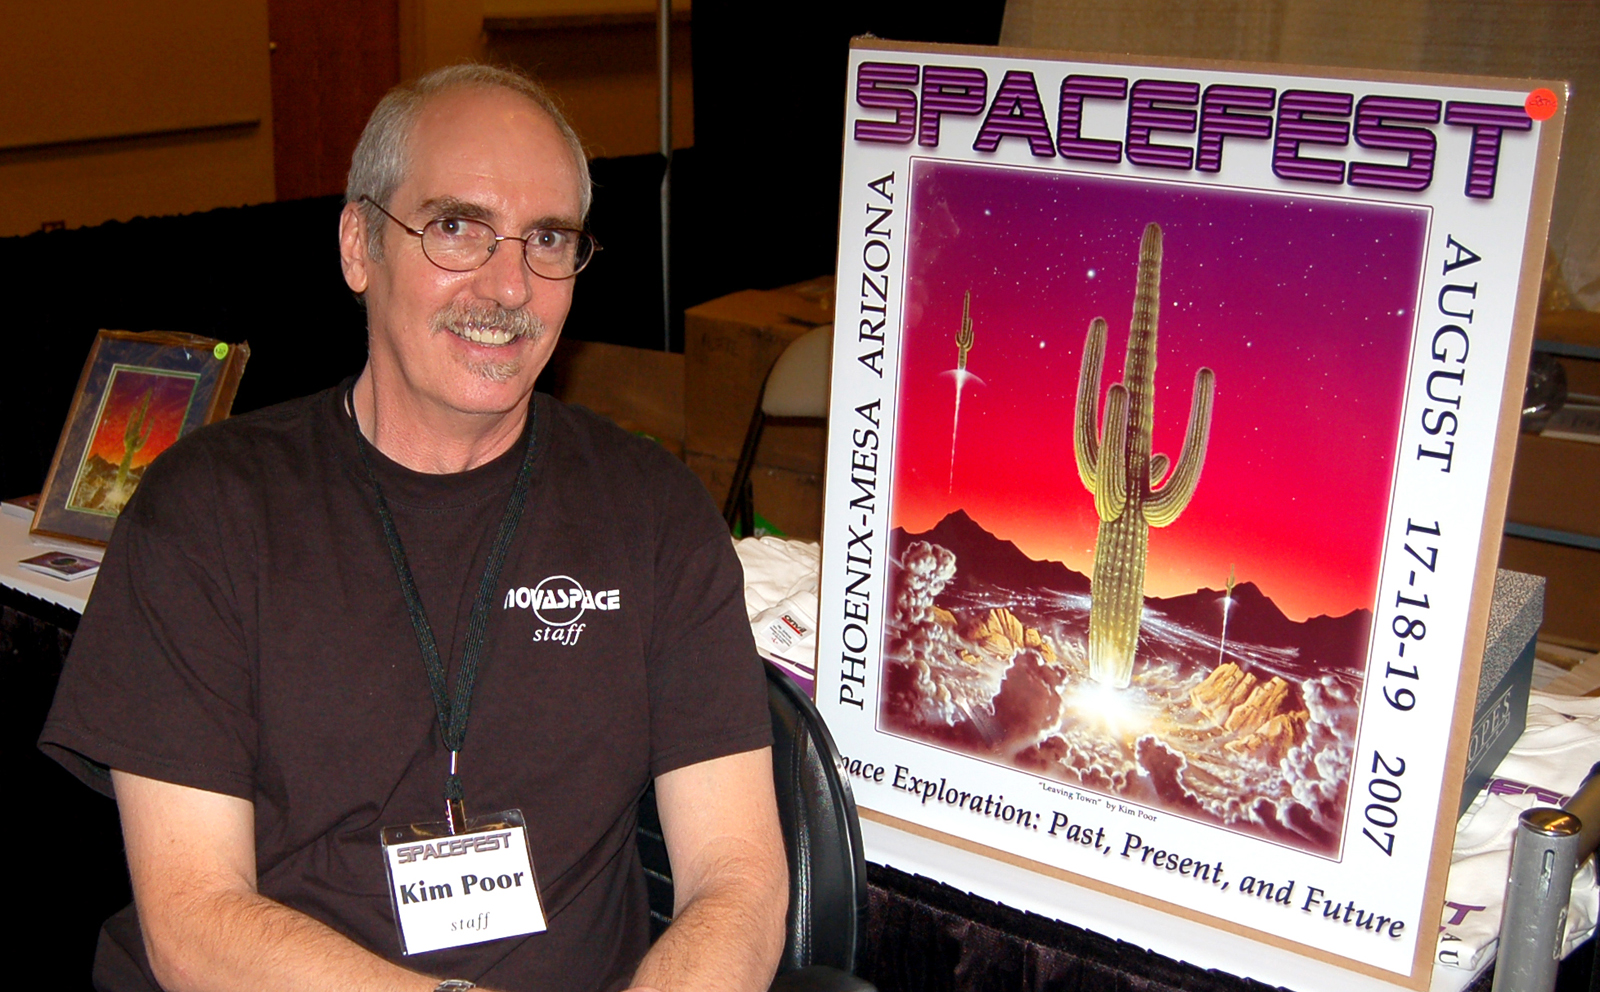 Space Cowboys Gravitate to Arizona's Spacefest 2007